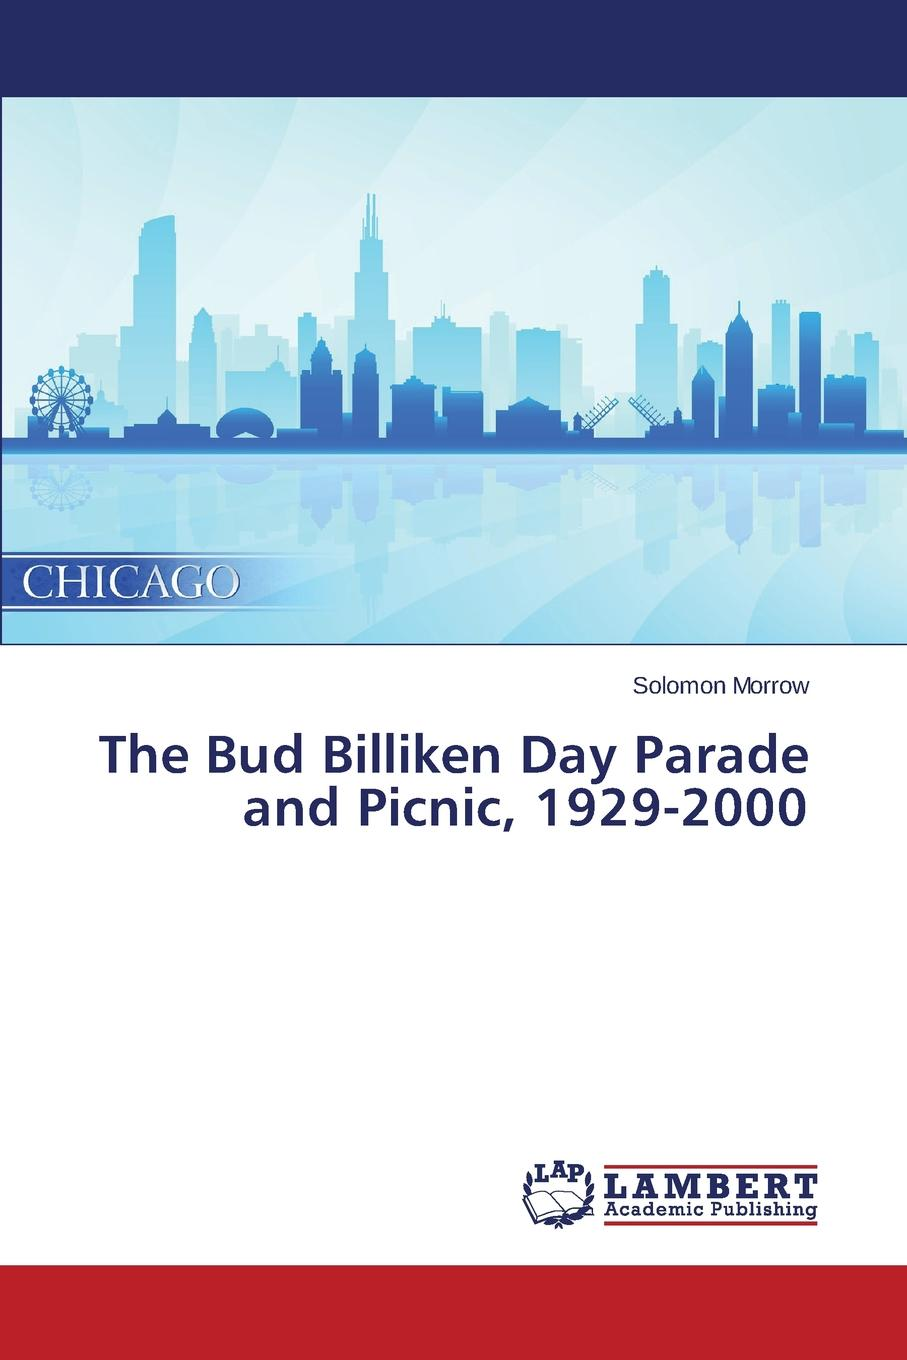 Morrow Solomon The Bud Billiken Day Parade and Picnic, 1929-2000